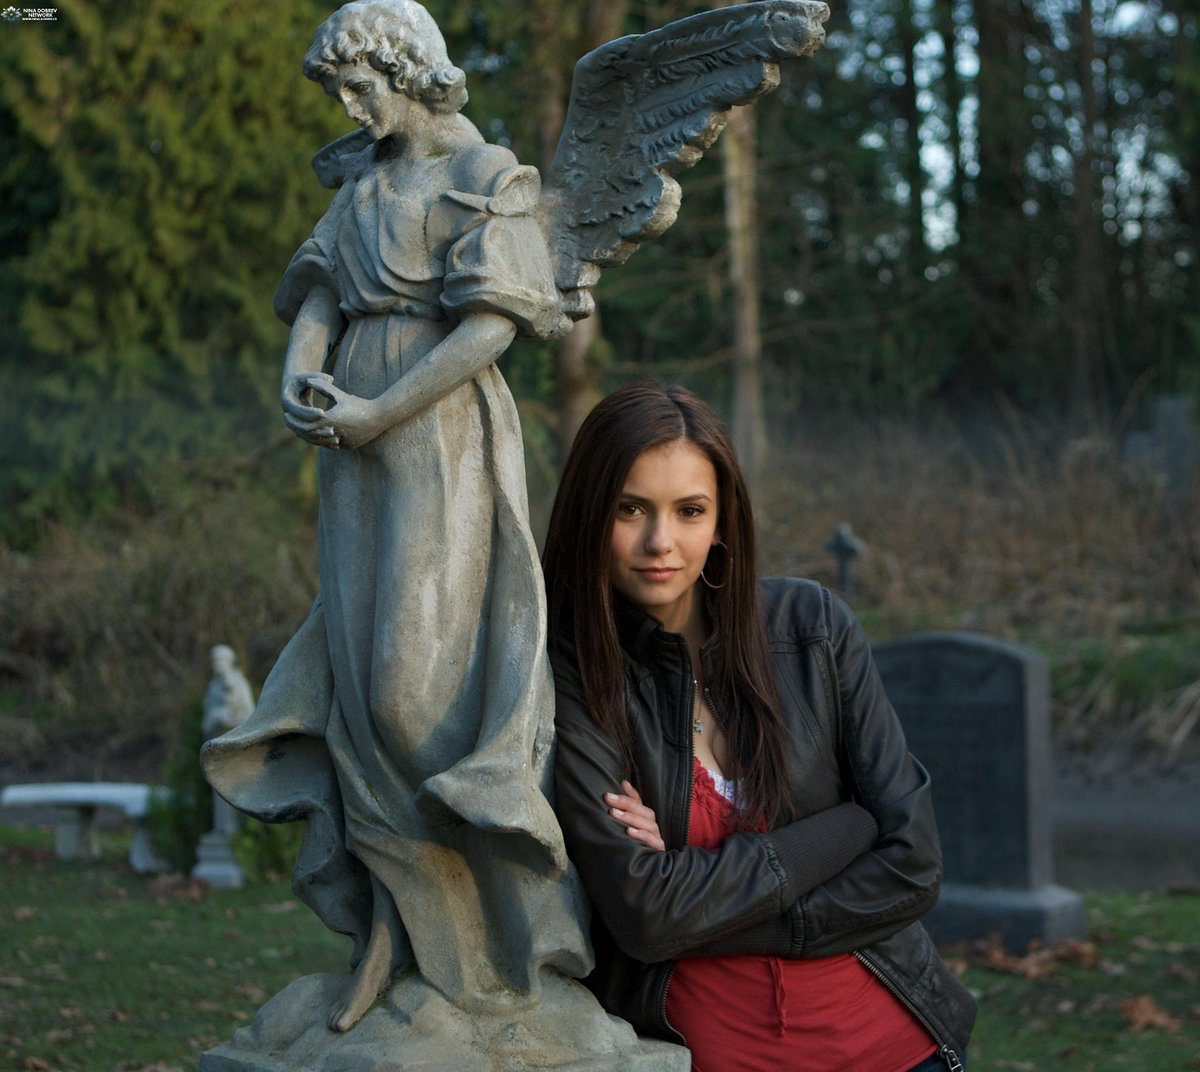 Forever Our Elena Gilbert! #GoodbyeNina #TVDFamily http://t.co/oaOWbrJCOe